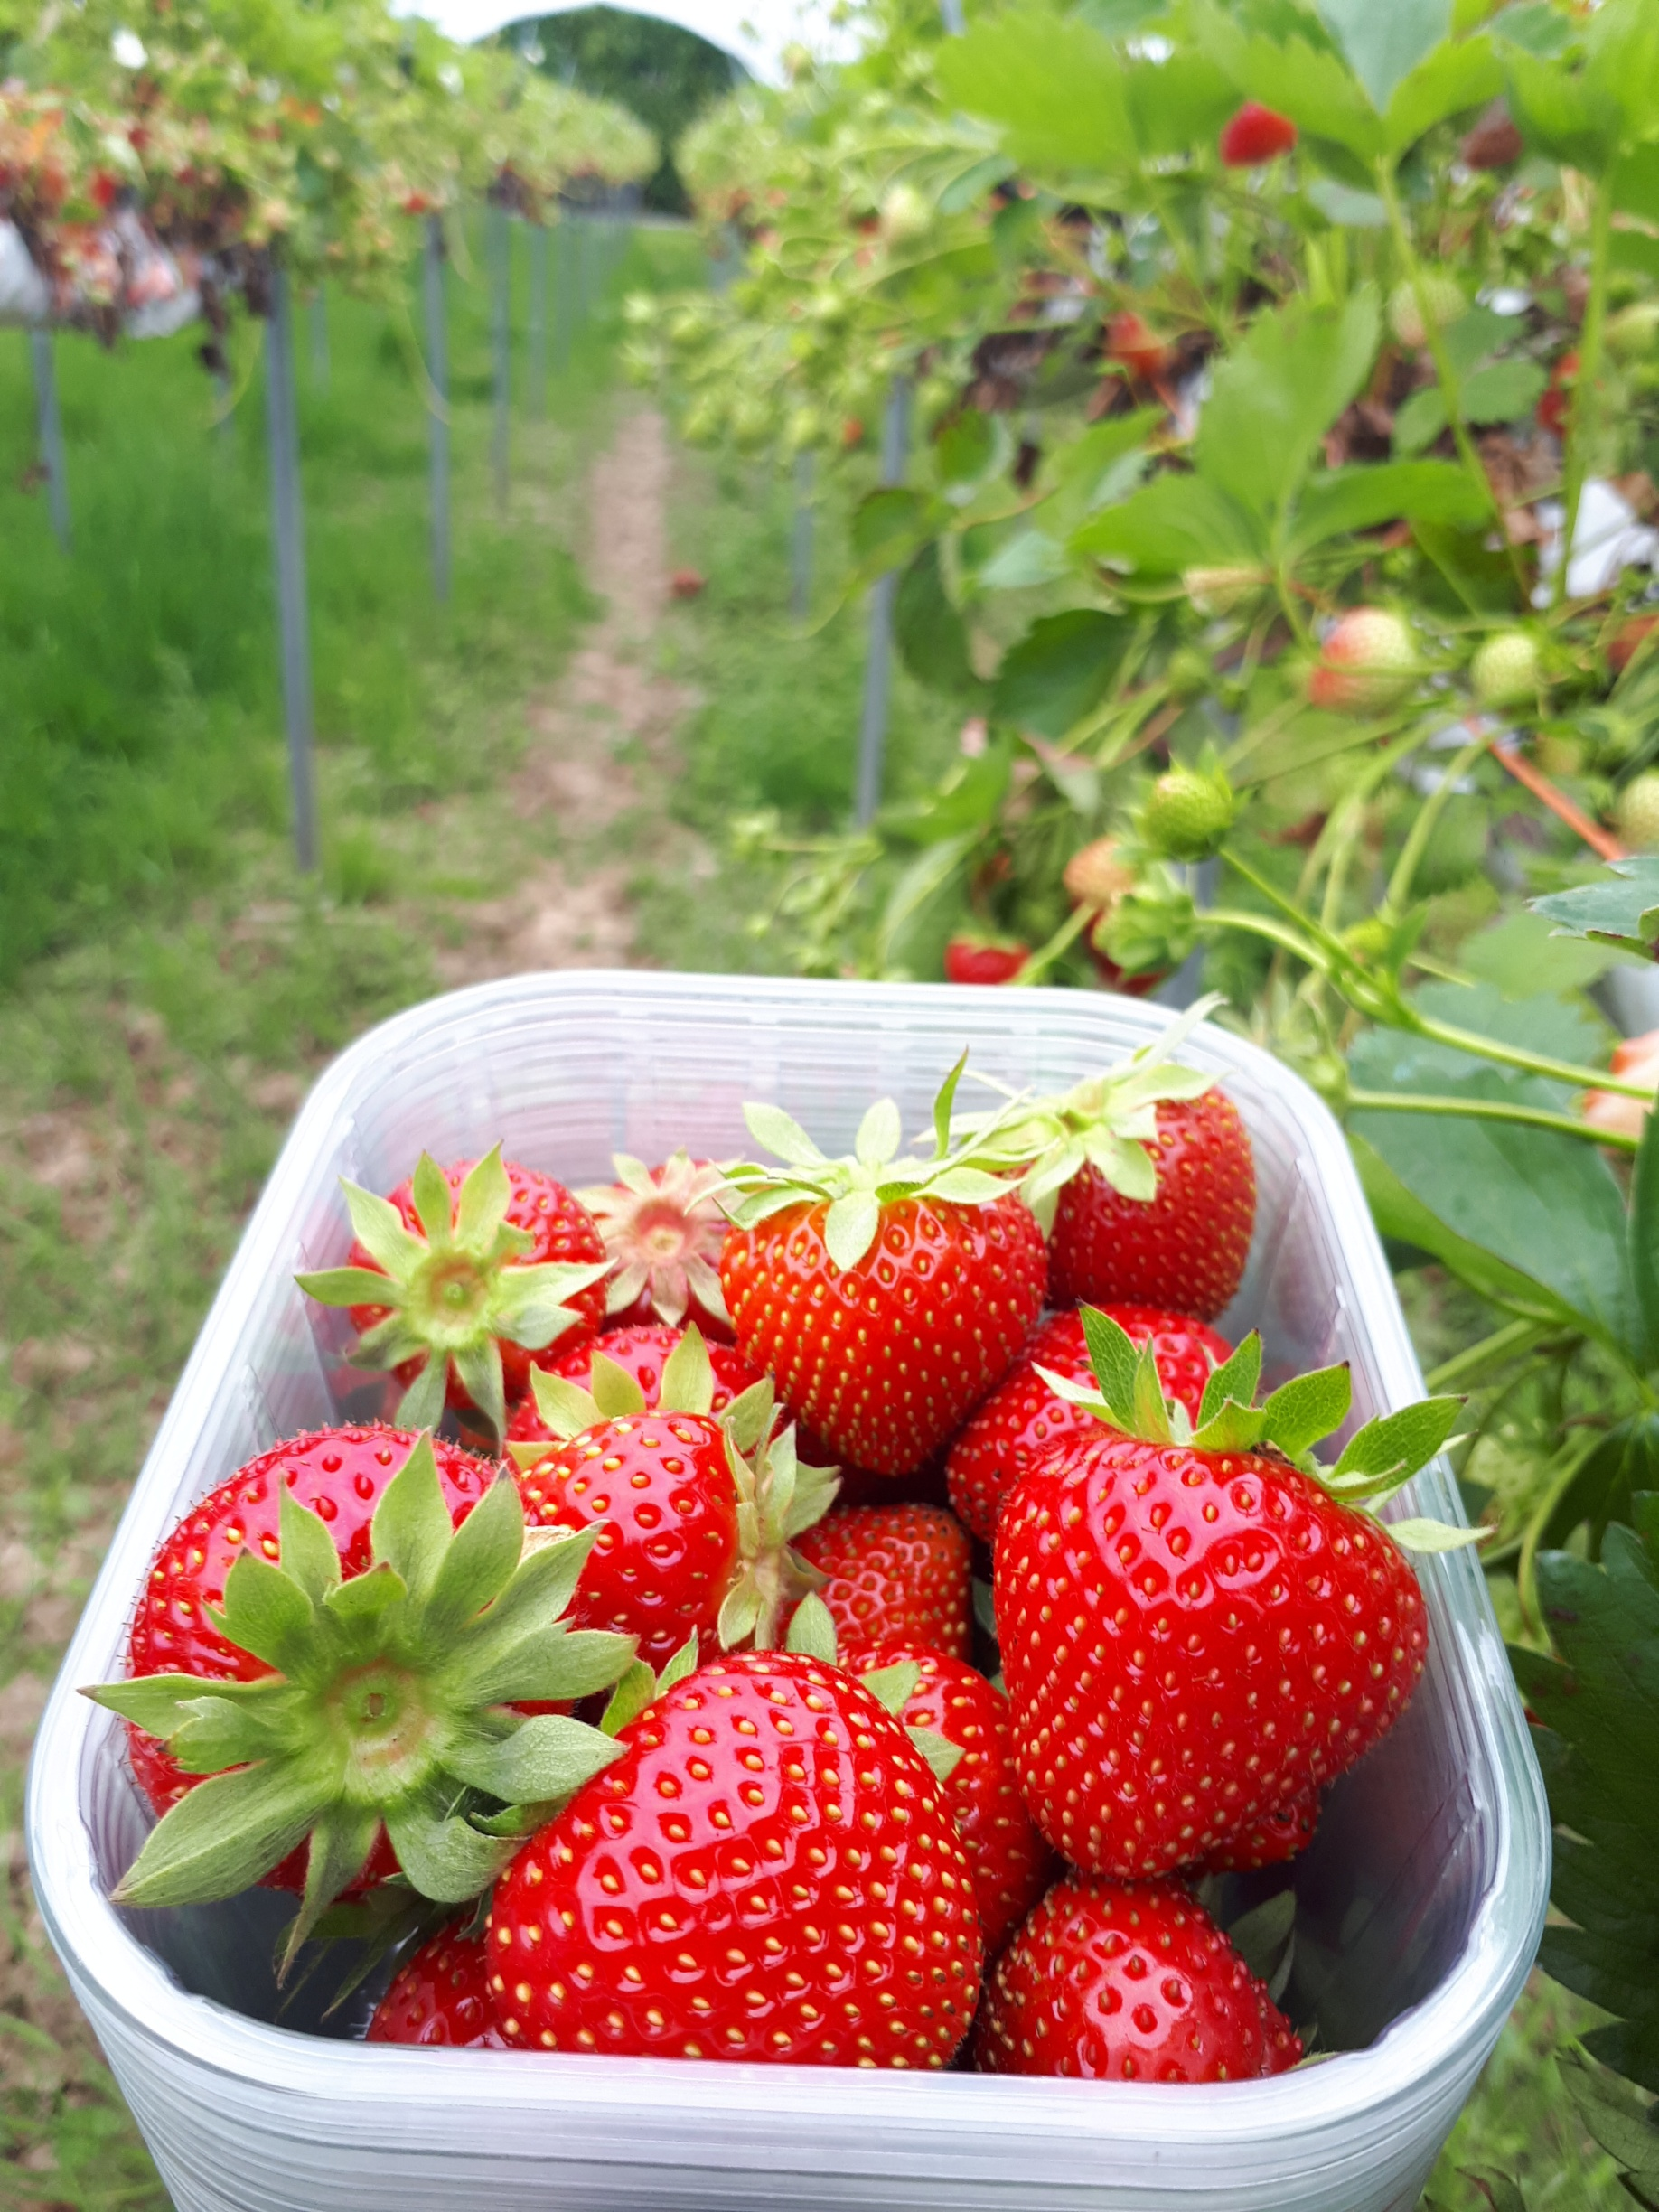 Strawberries on Sale!